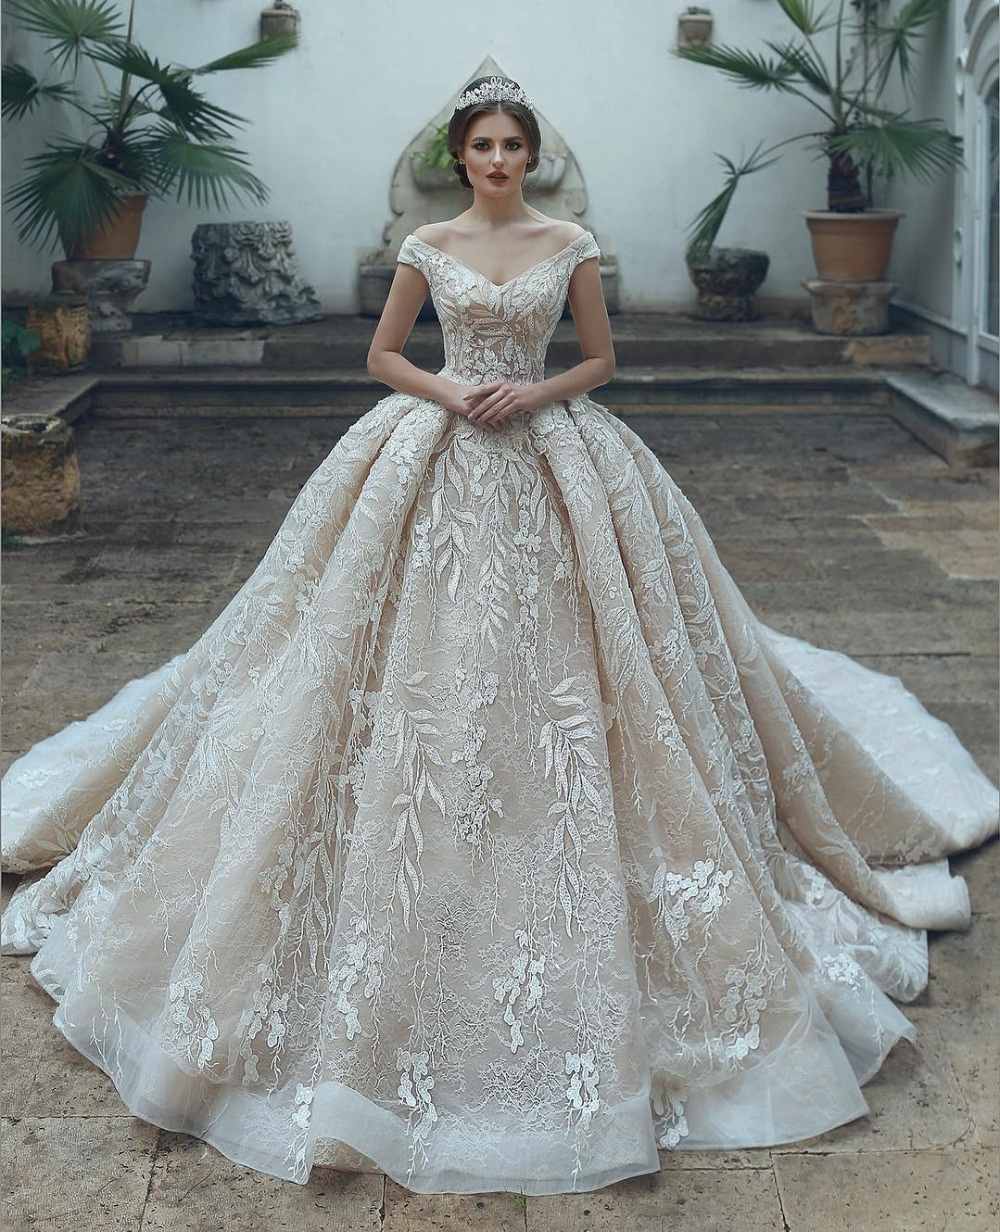 Eslieb Luxury High-end Custom made lace Wedding dress 2019 Ball Gown V-neck wedding  Dresses Vestido de Noiva Bridal Gown 5ed57f638f94